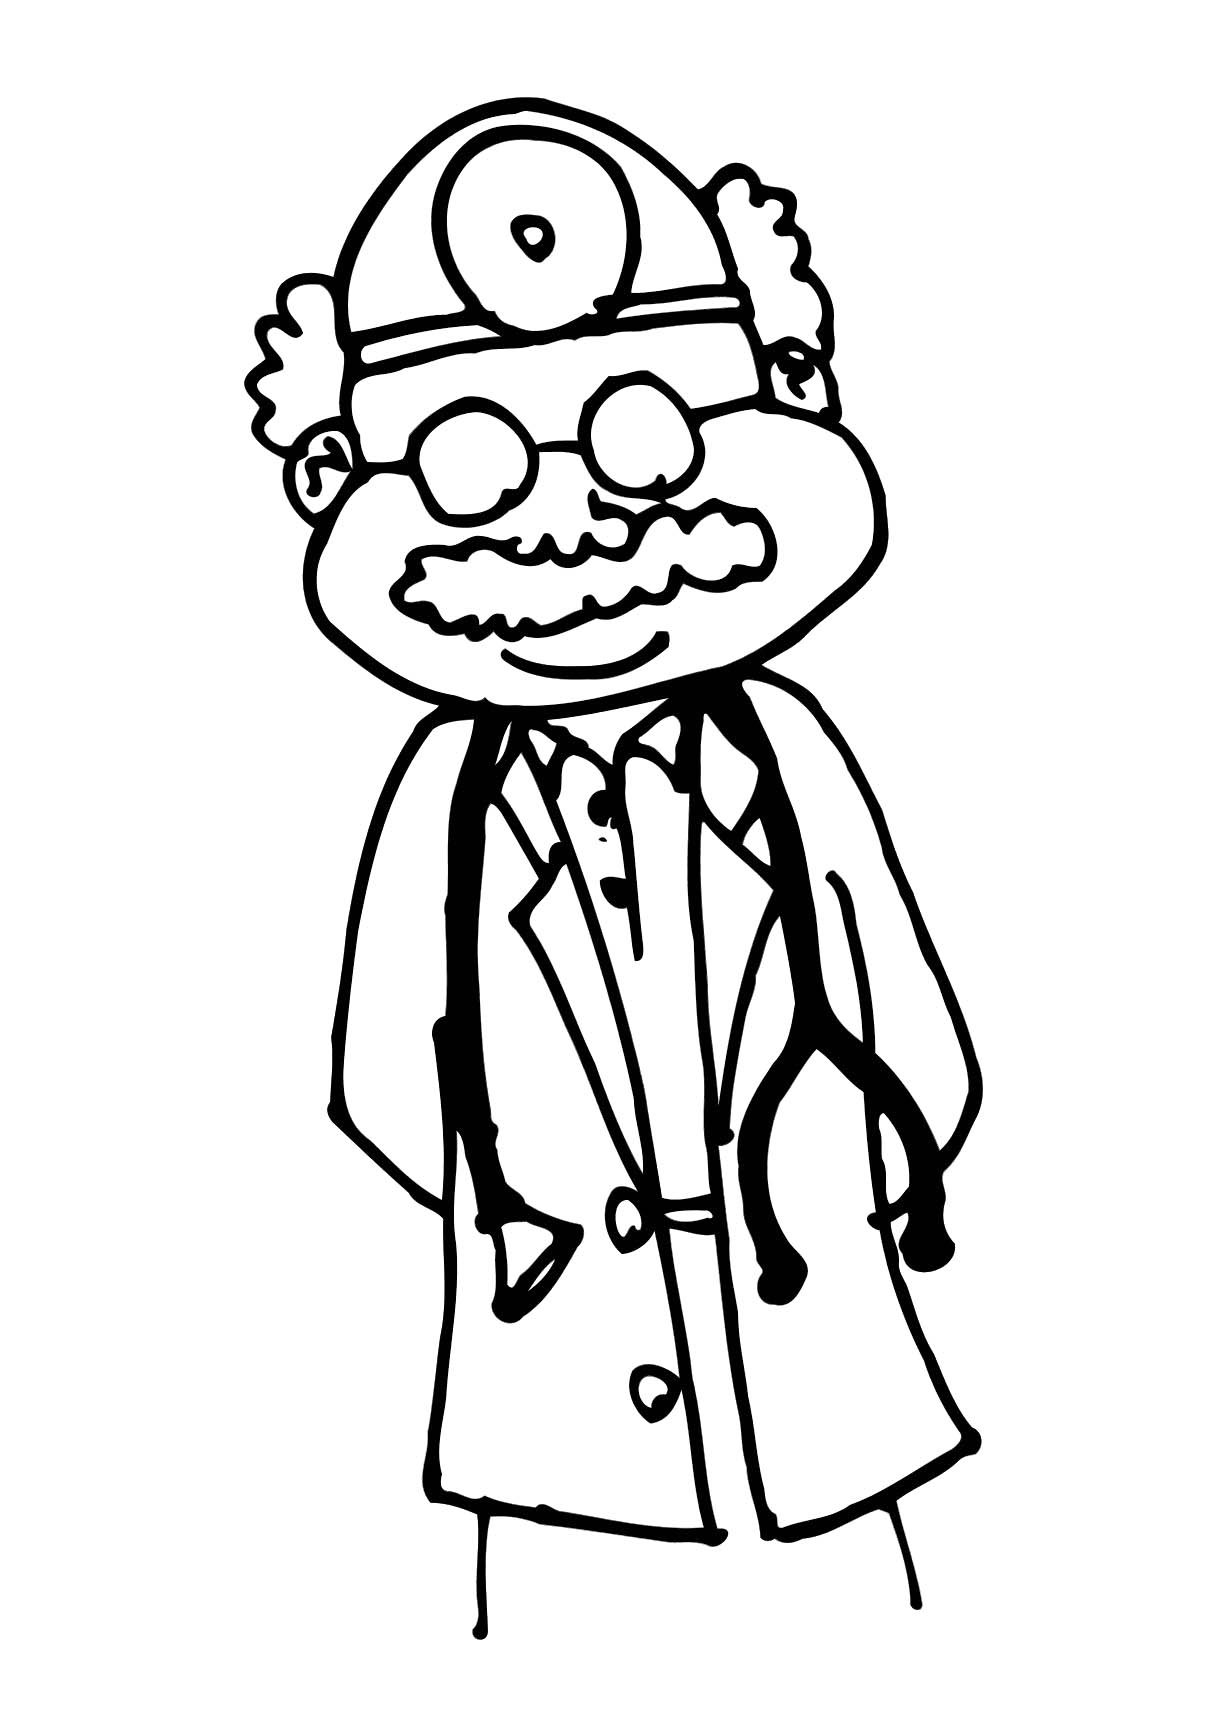 kid doctor coloring pages - photo#23